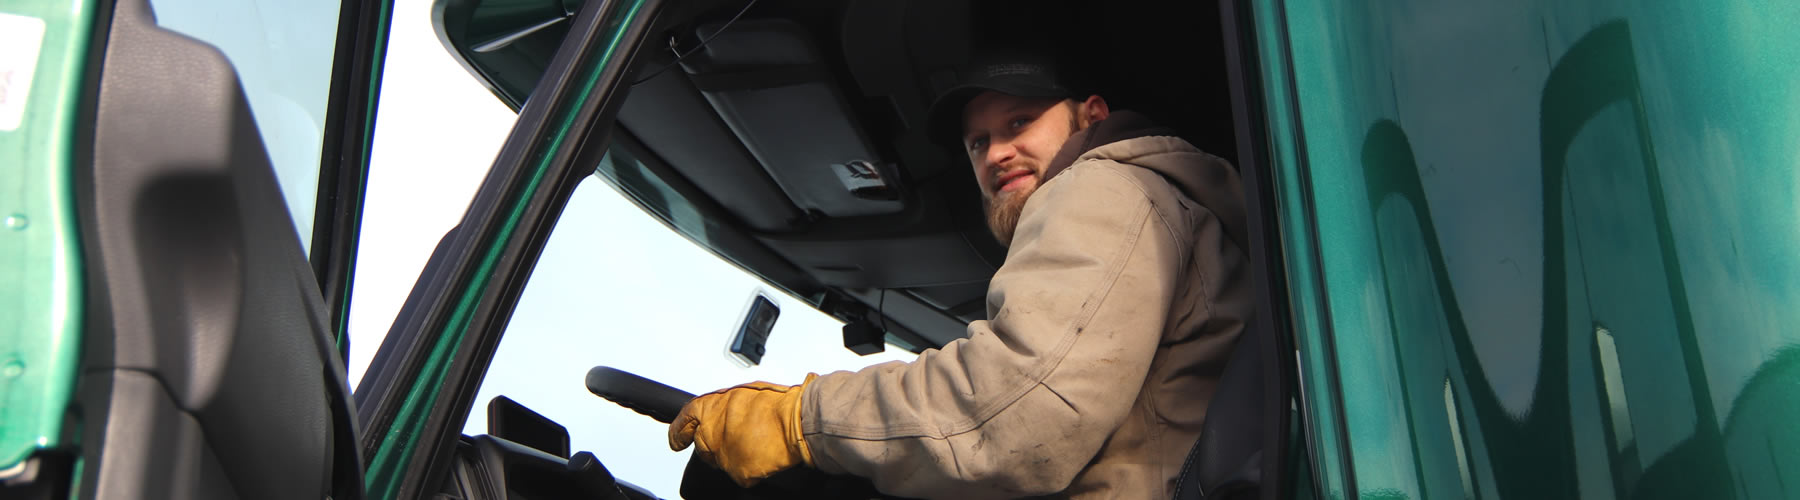 Apply now for a job with Daggett Truck Line Inc. from Frazee and Clearwater, Minnesota.